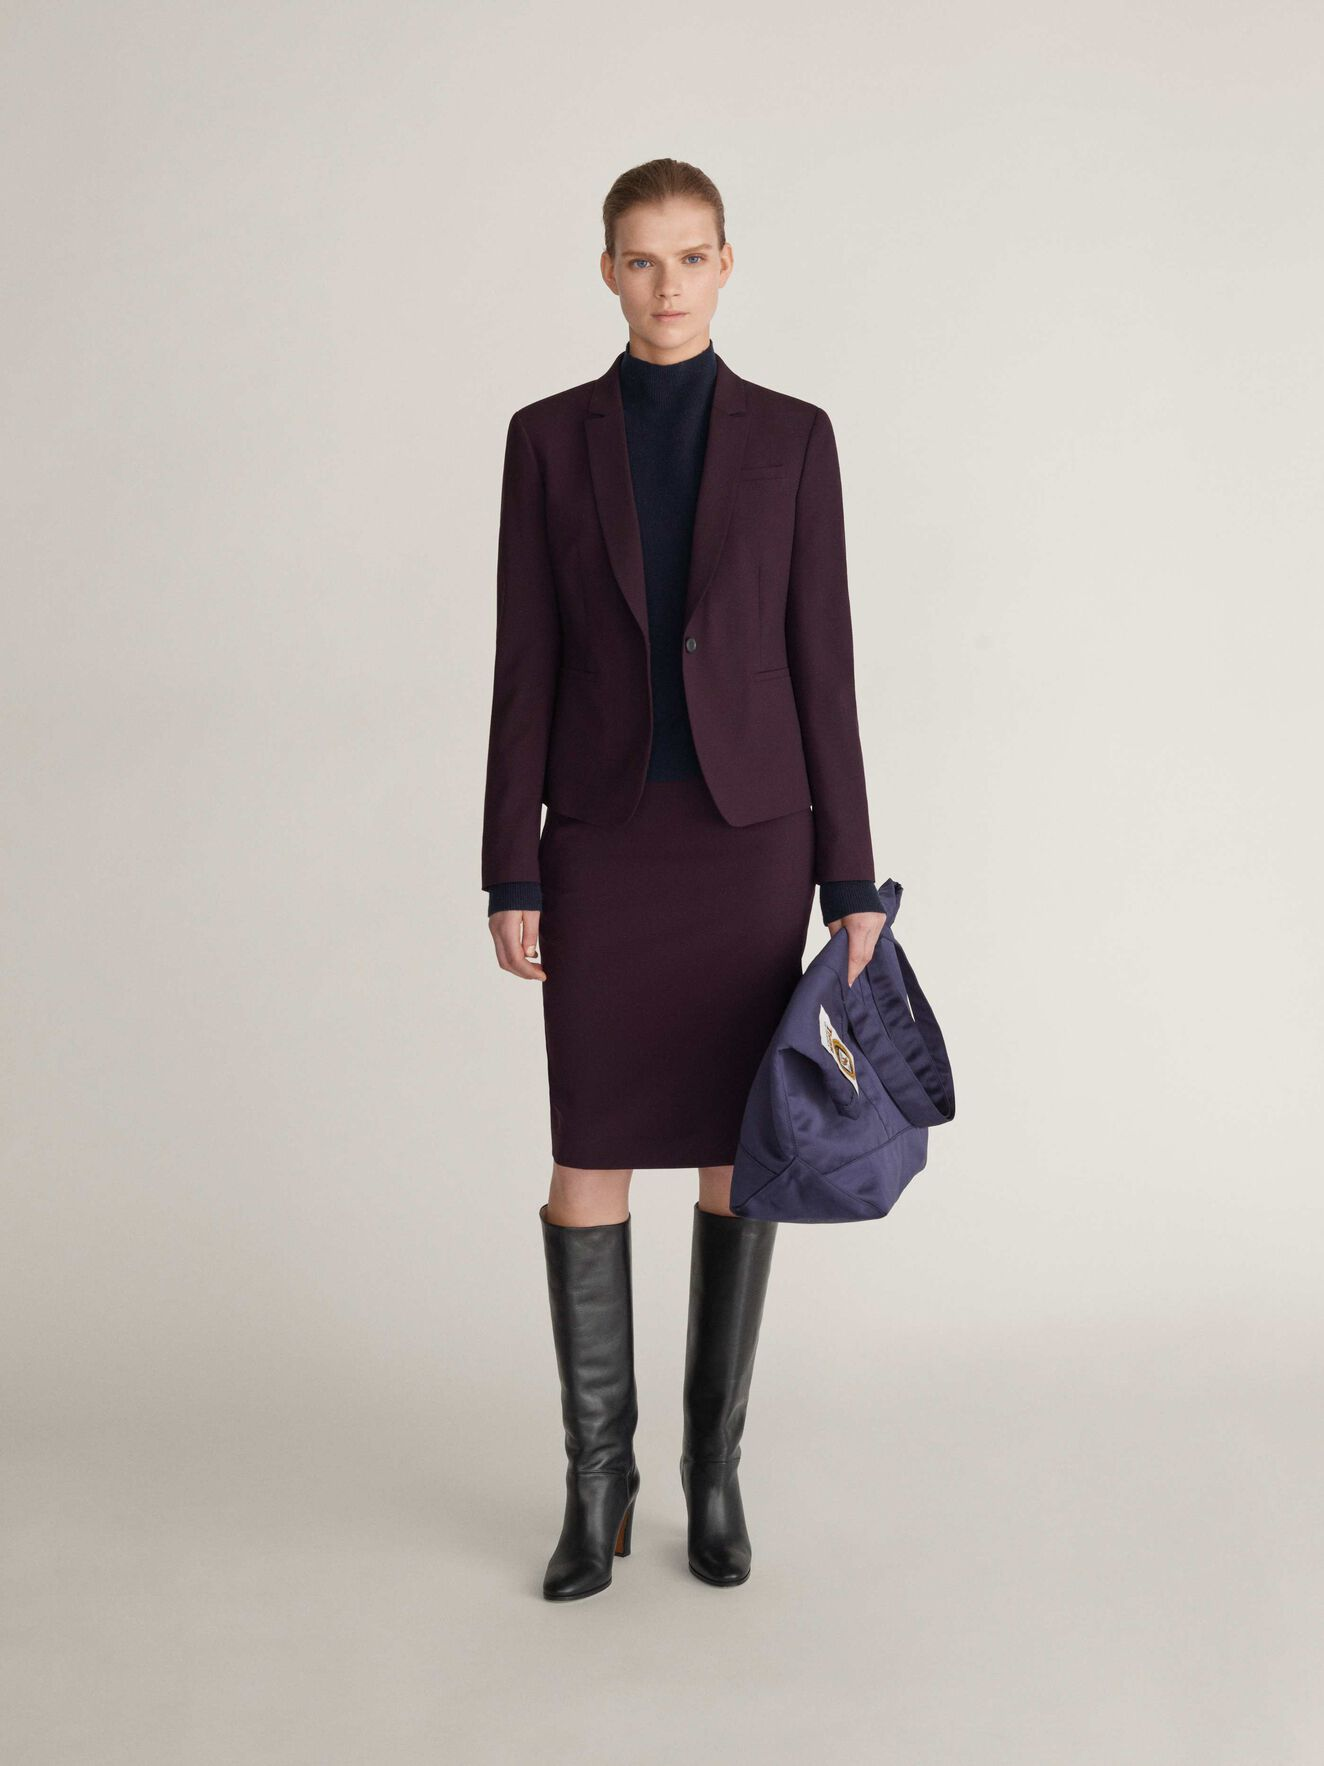 Erene Skirt in Juicy Plum from Tiger of Sweden